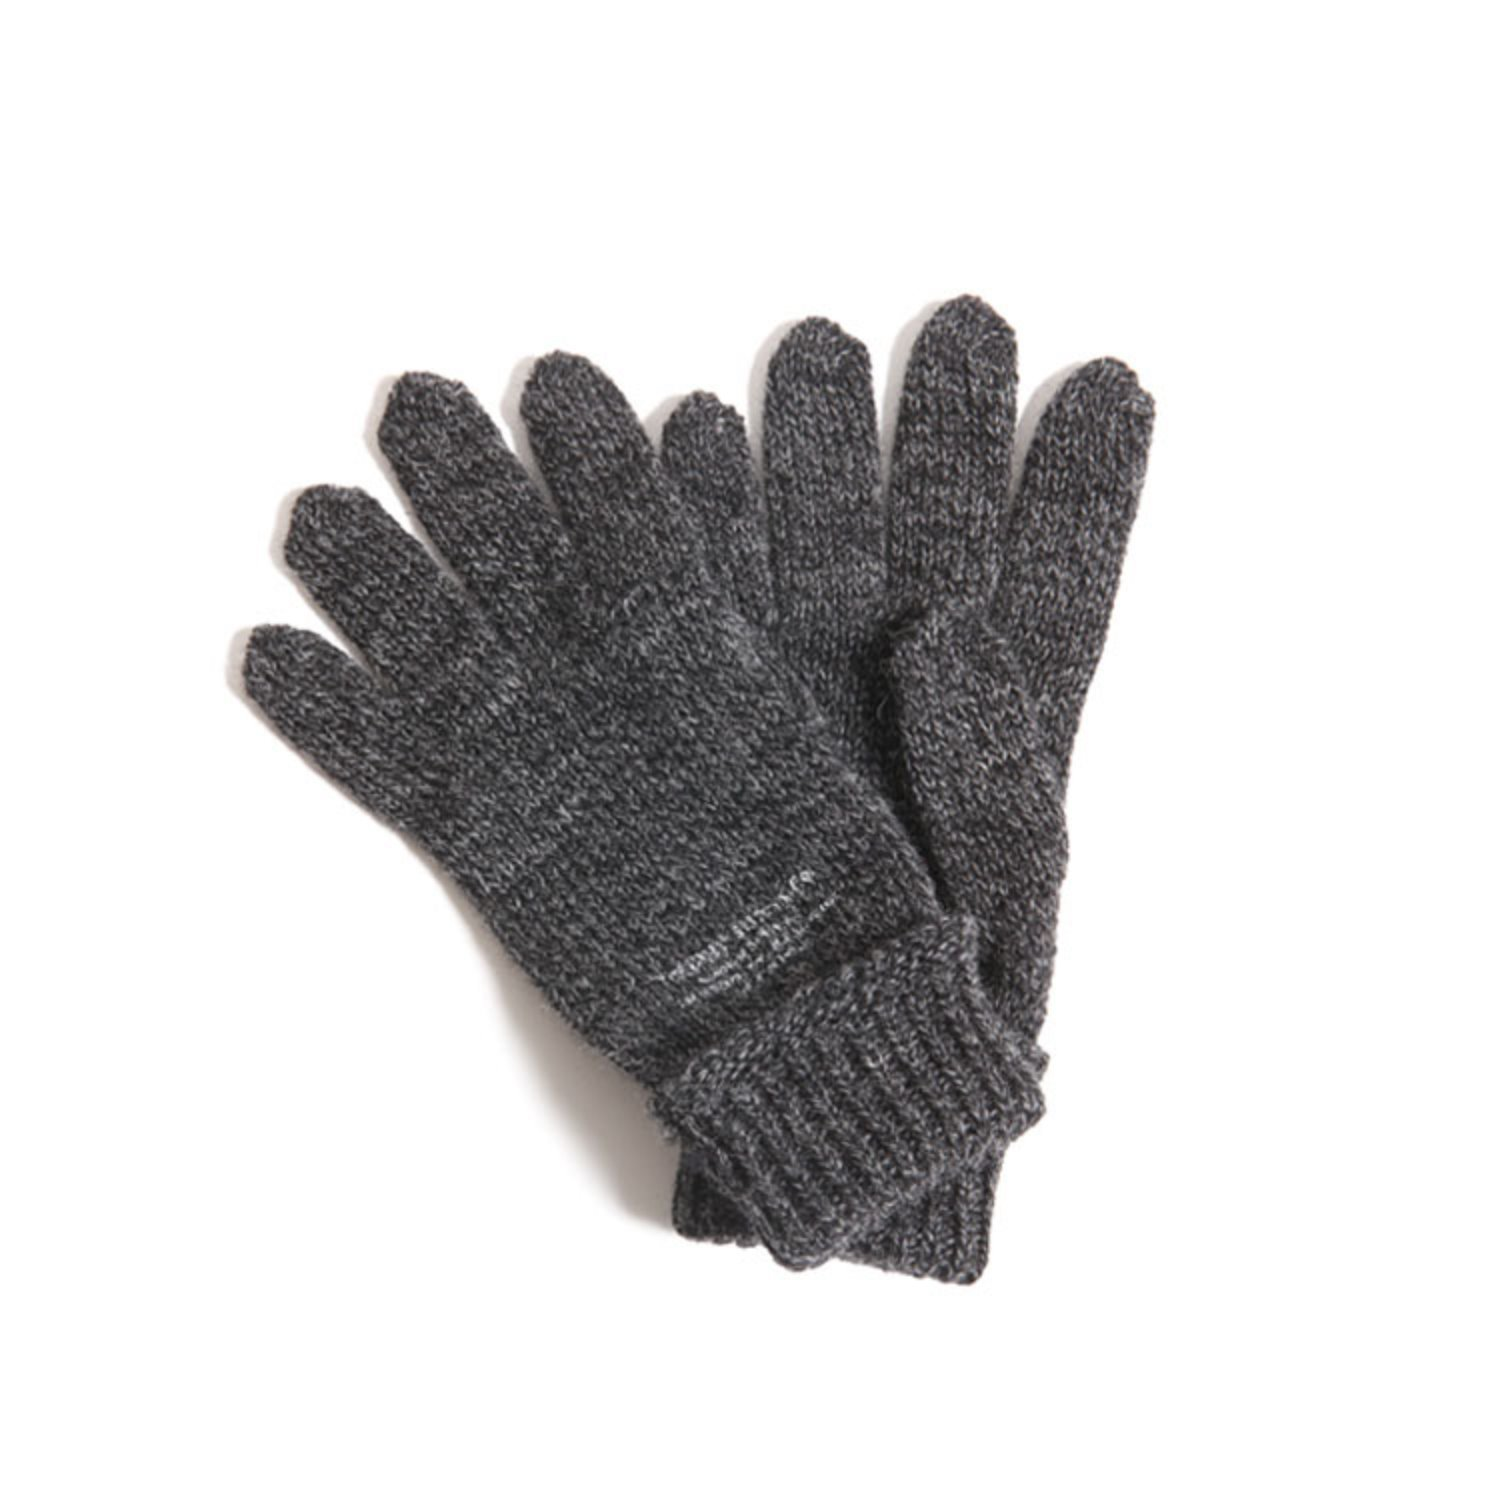 Watchman Knit Glove (Grey Mix)